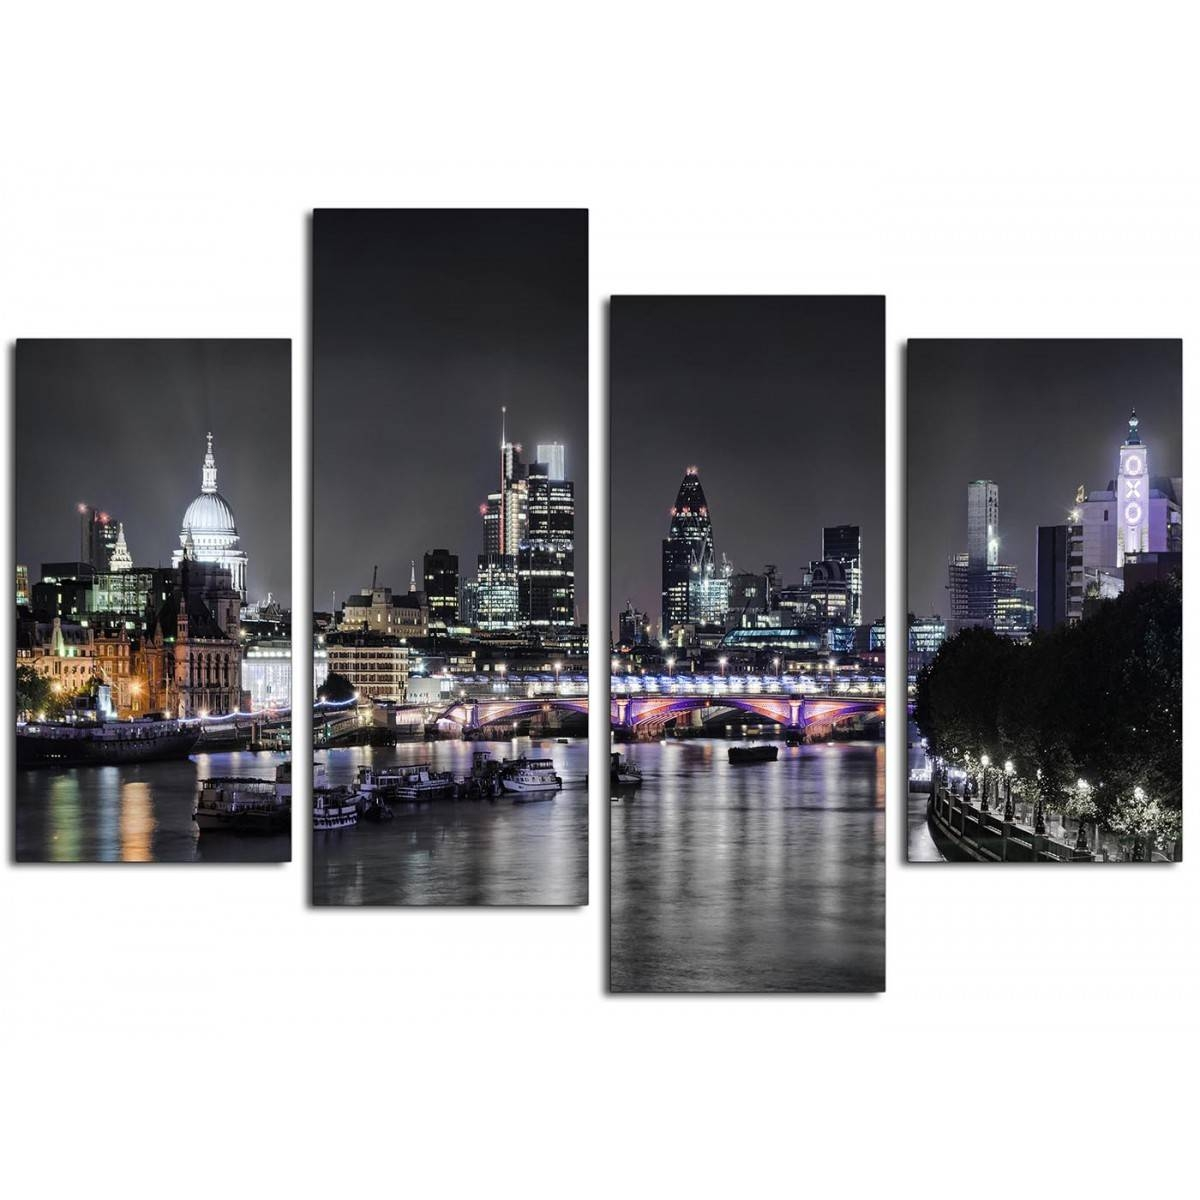 Canvas Wall Art Of London Skyline For Your Living Room – 4 Panel Pertaining To Most Recently Released Cityscape Canvas Wall Art (Gallery 14 of 20)